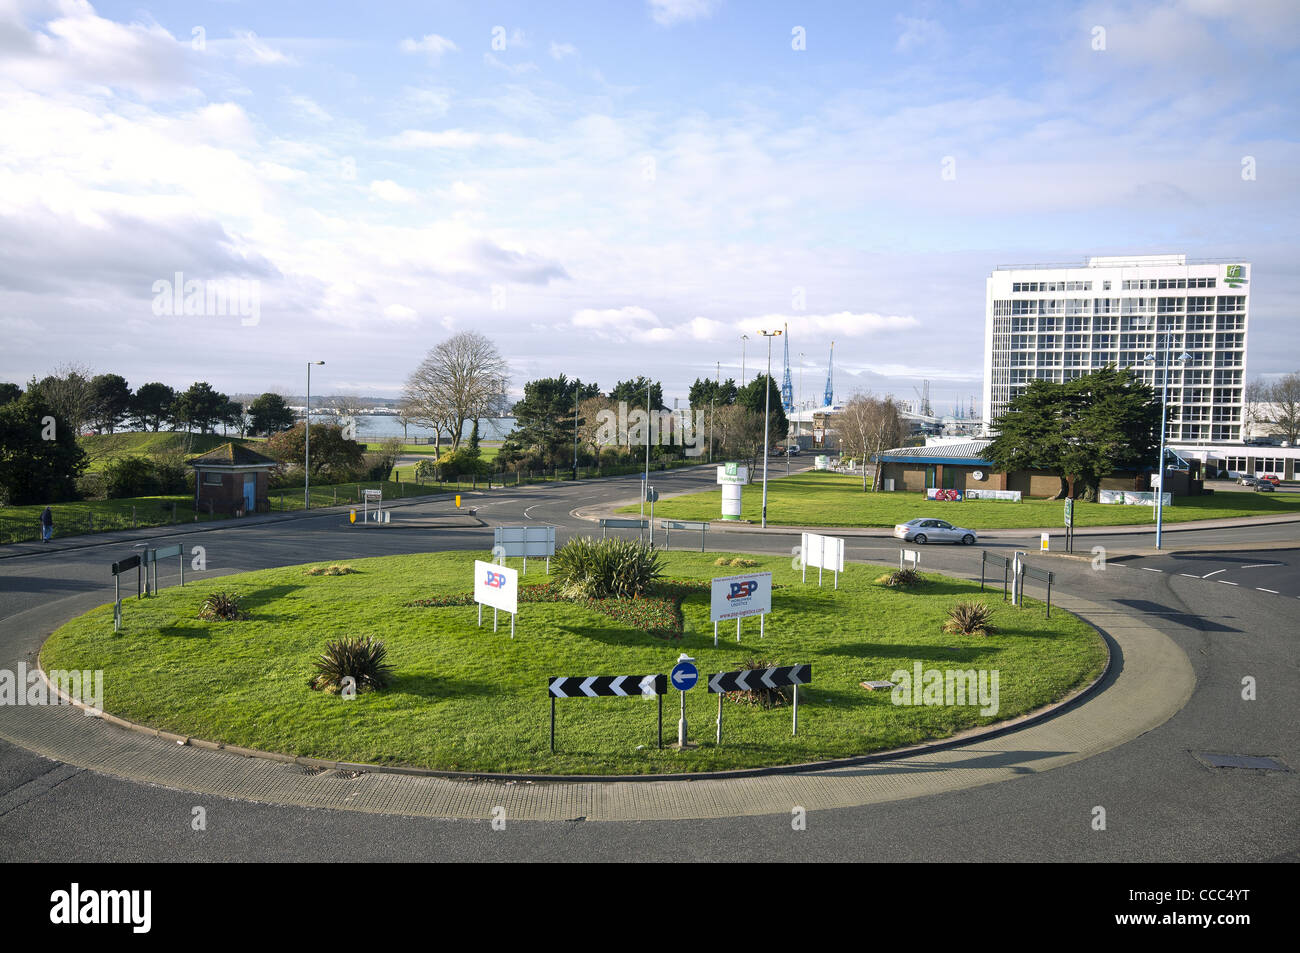 The view towards Dock Gate 8 with Mayflower Park on the left and the Holiday Inn on the right in Southampton, Hampshire, Stock Photo